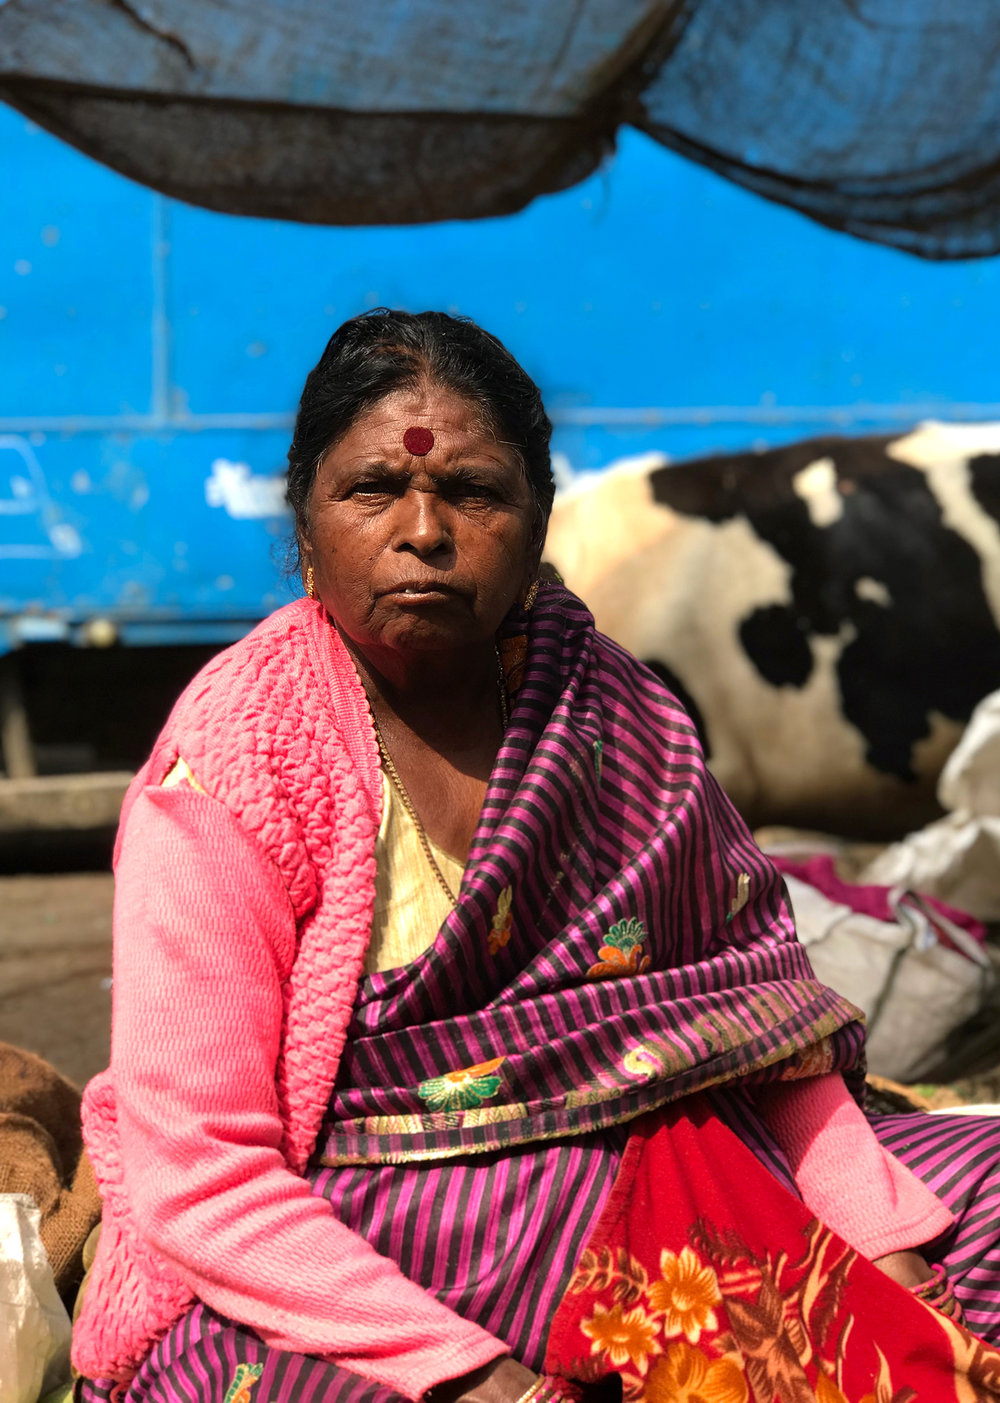 Market woman, Bangalore